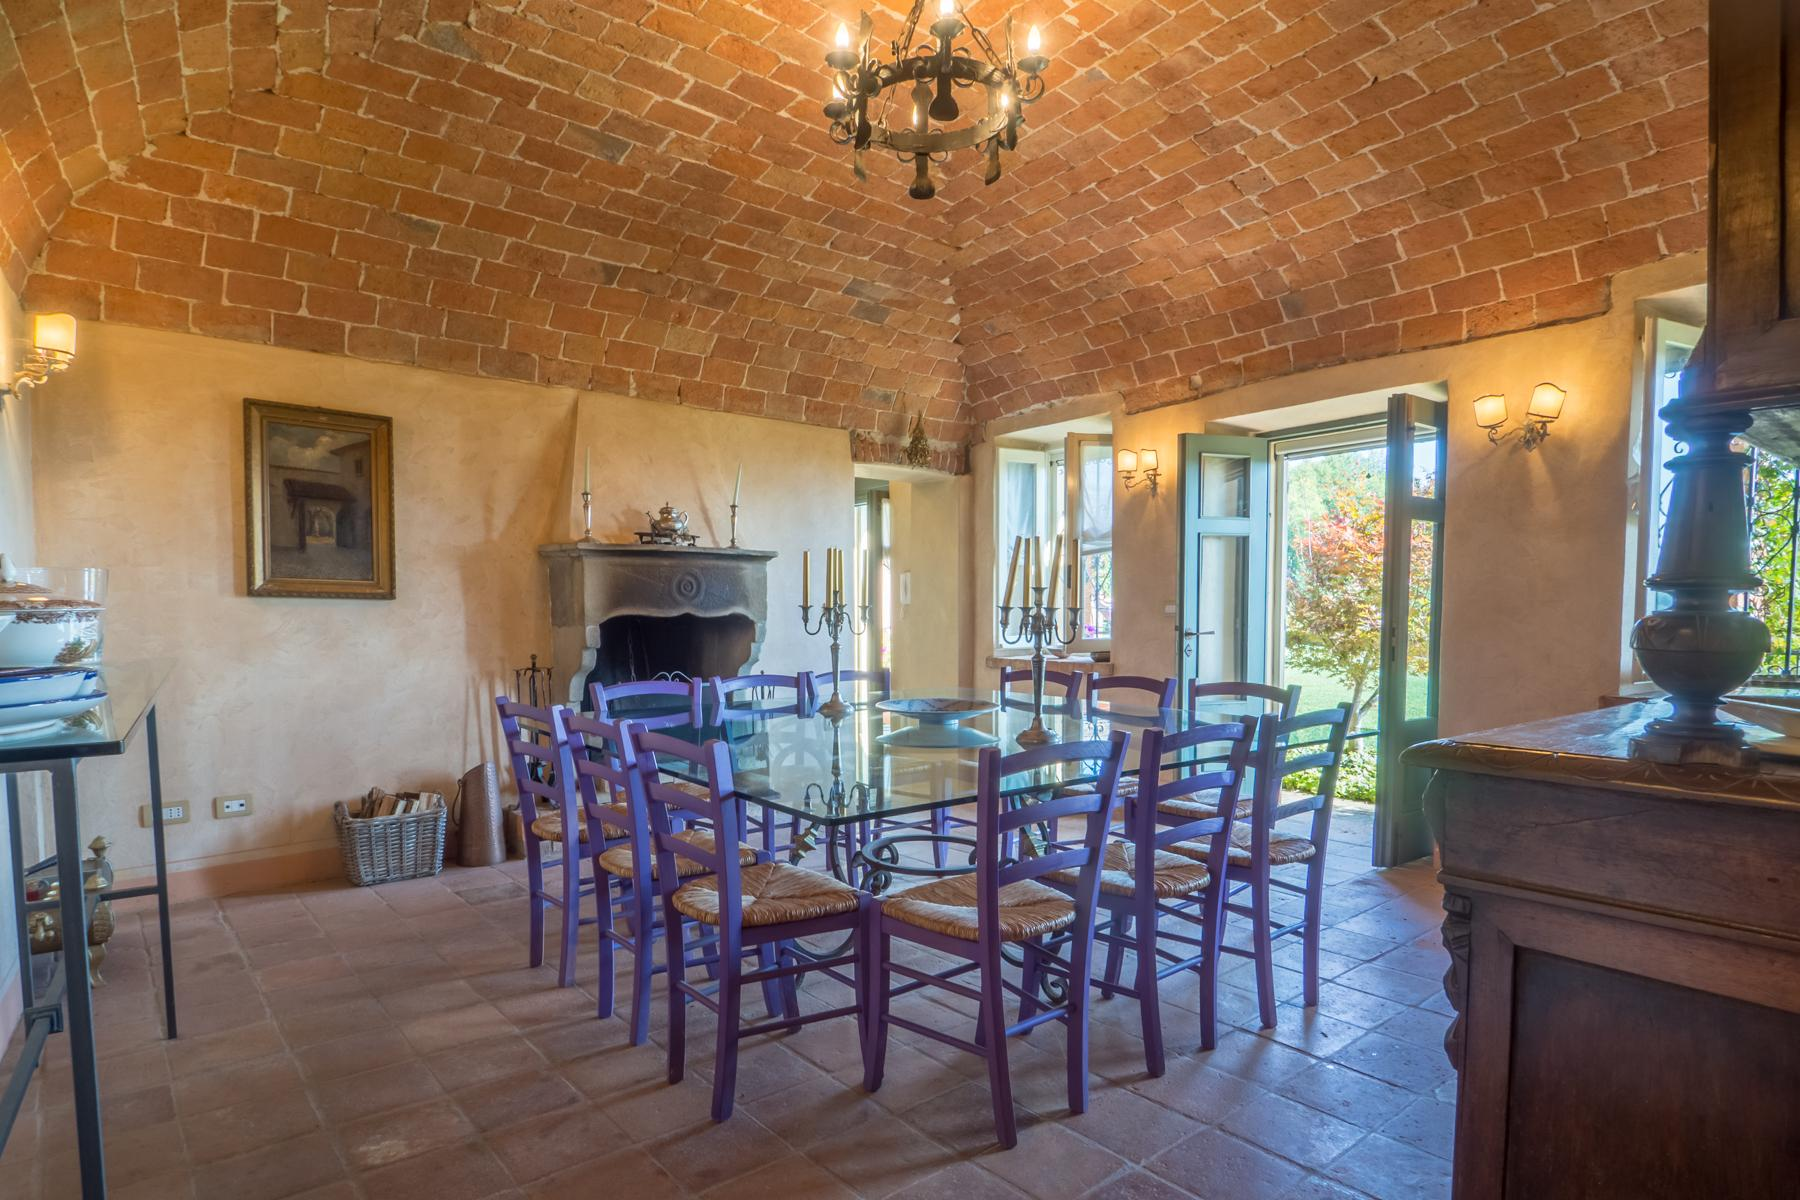 Magnificent property in the heart of Monferrato region - 7